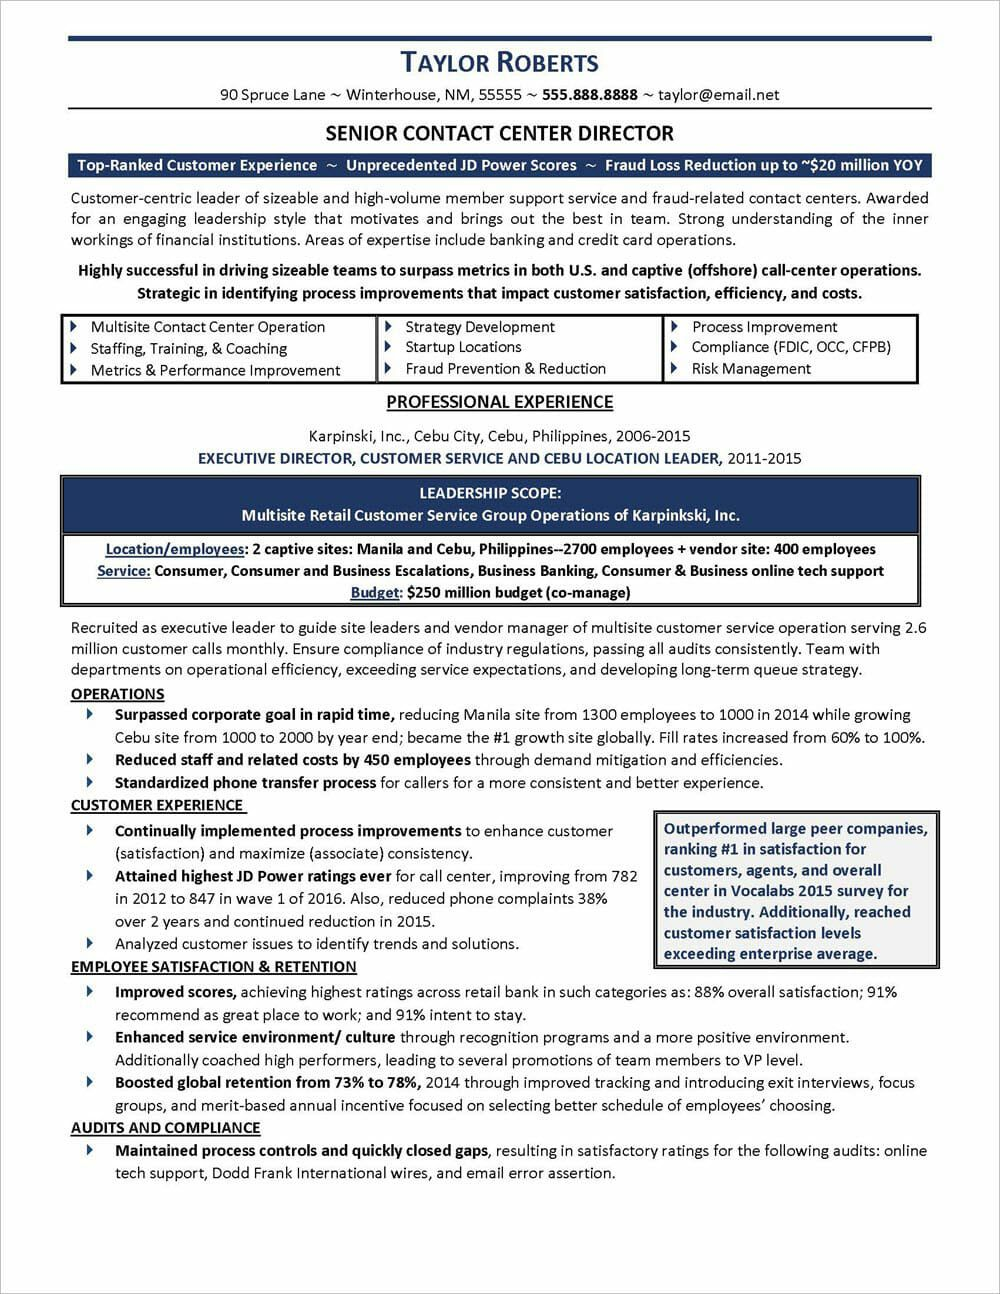 Call center resume example distinctive career services